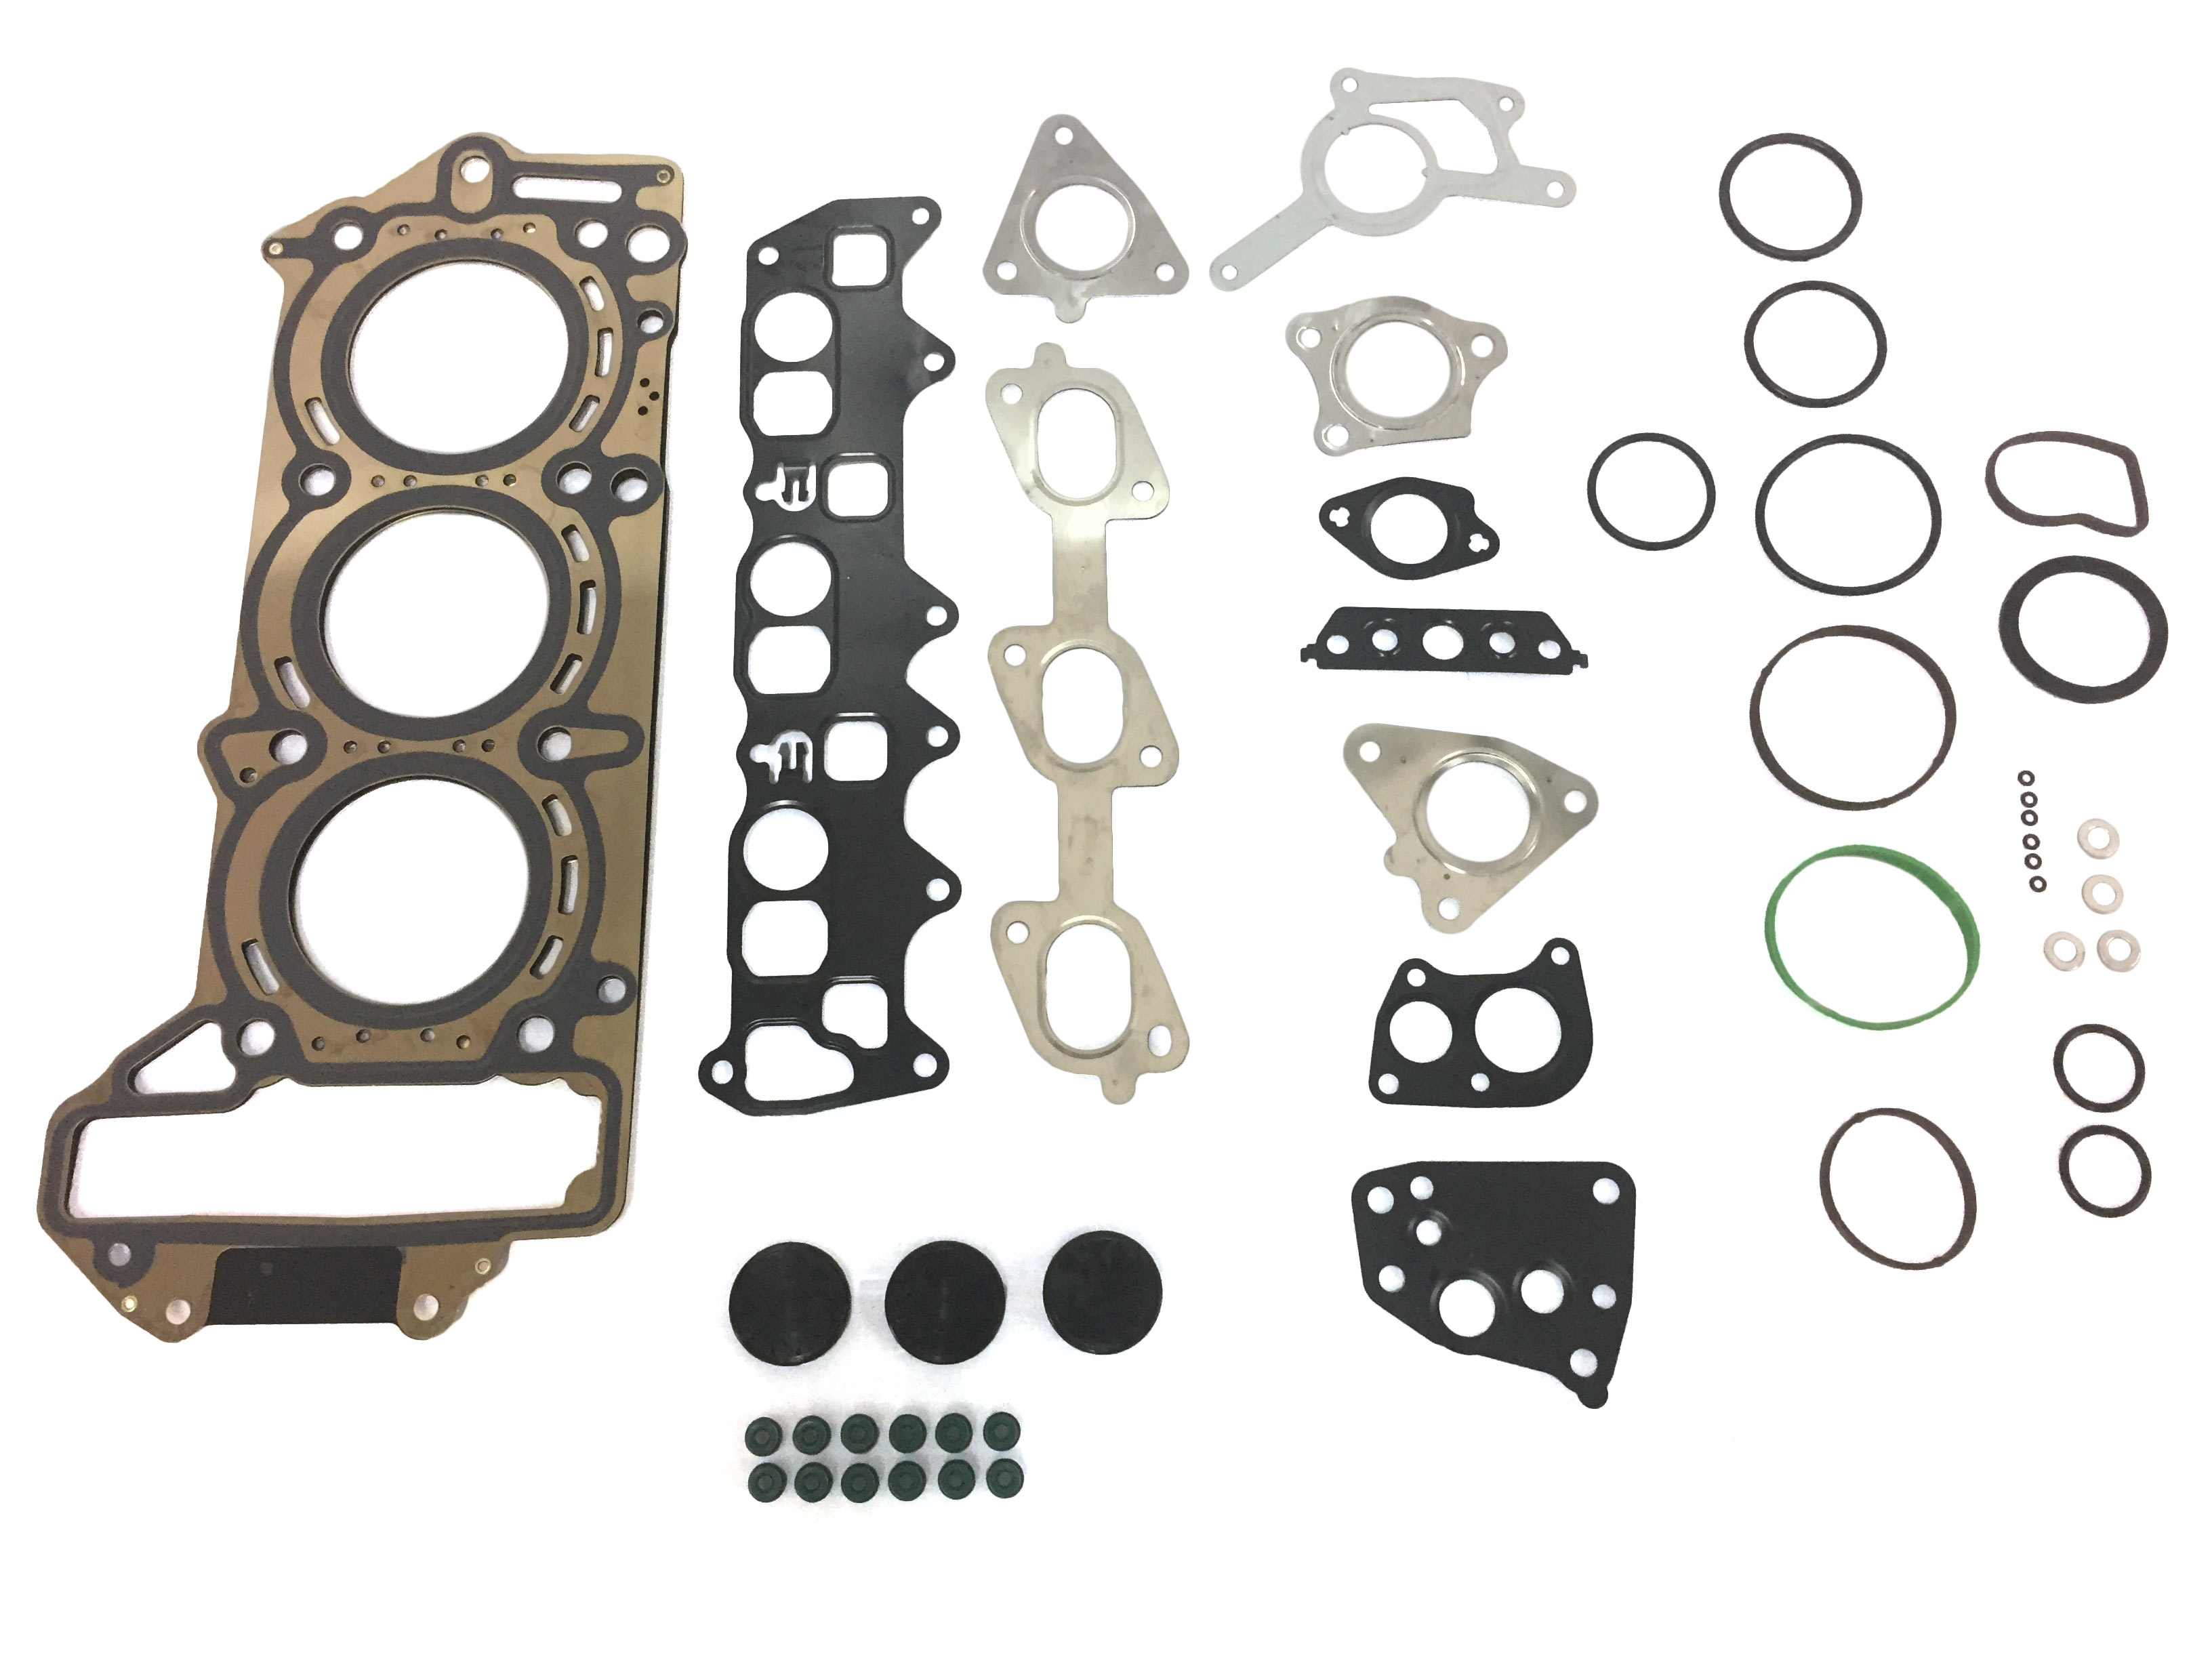 Cylinder head gasket cylinder head gasket right Mercedes 3.0 CDI 642.820 NEW